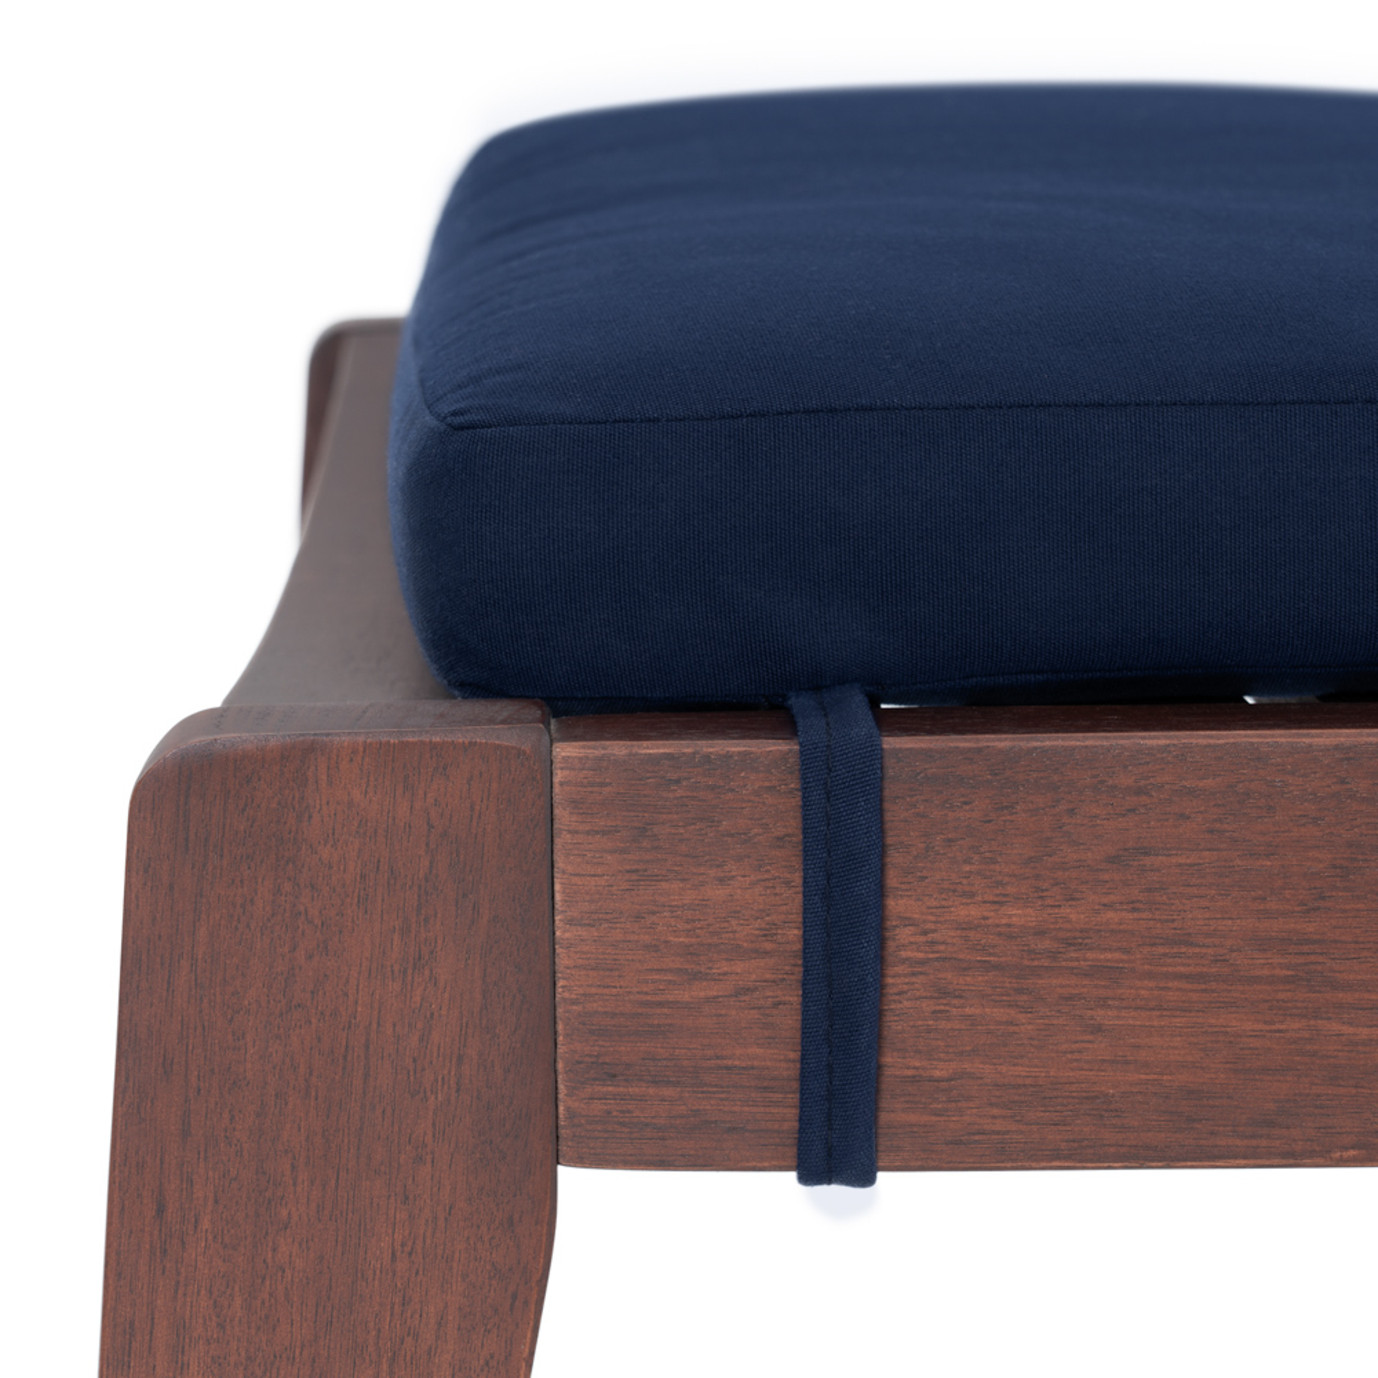 Vaughn Chaise Lounges - Navy Blue